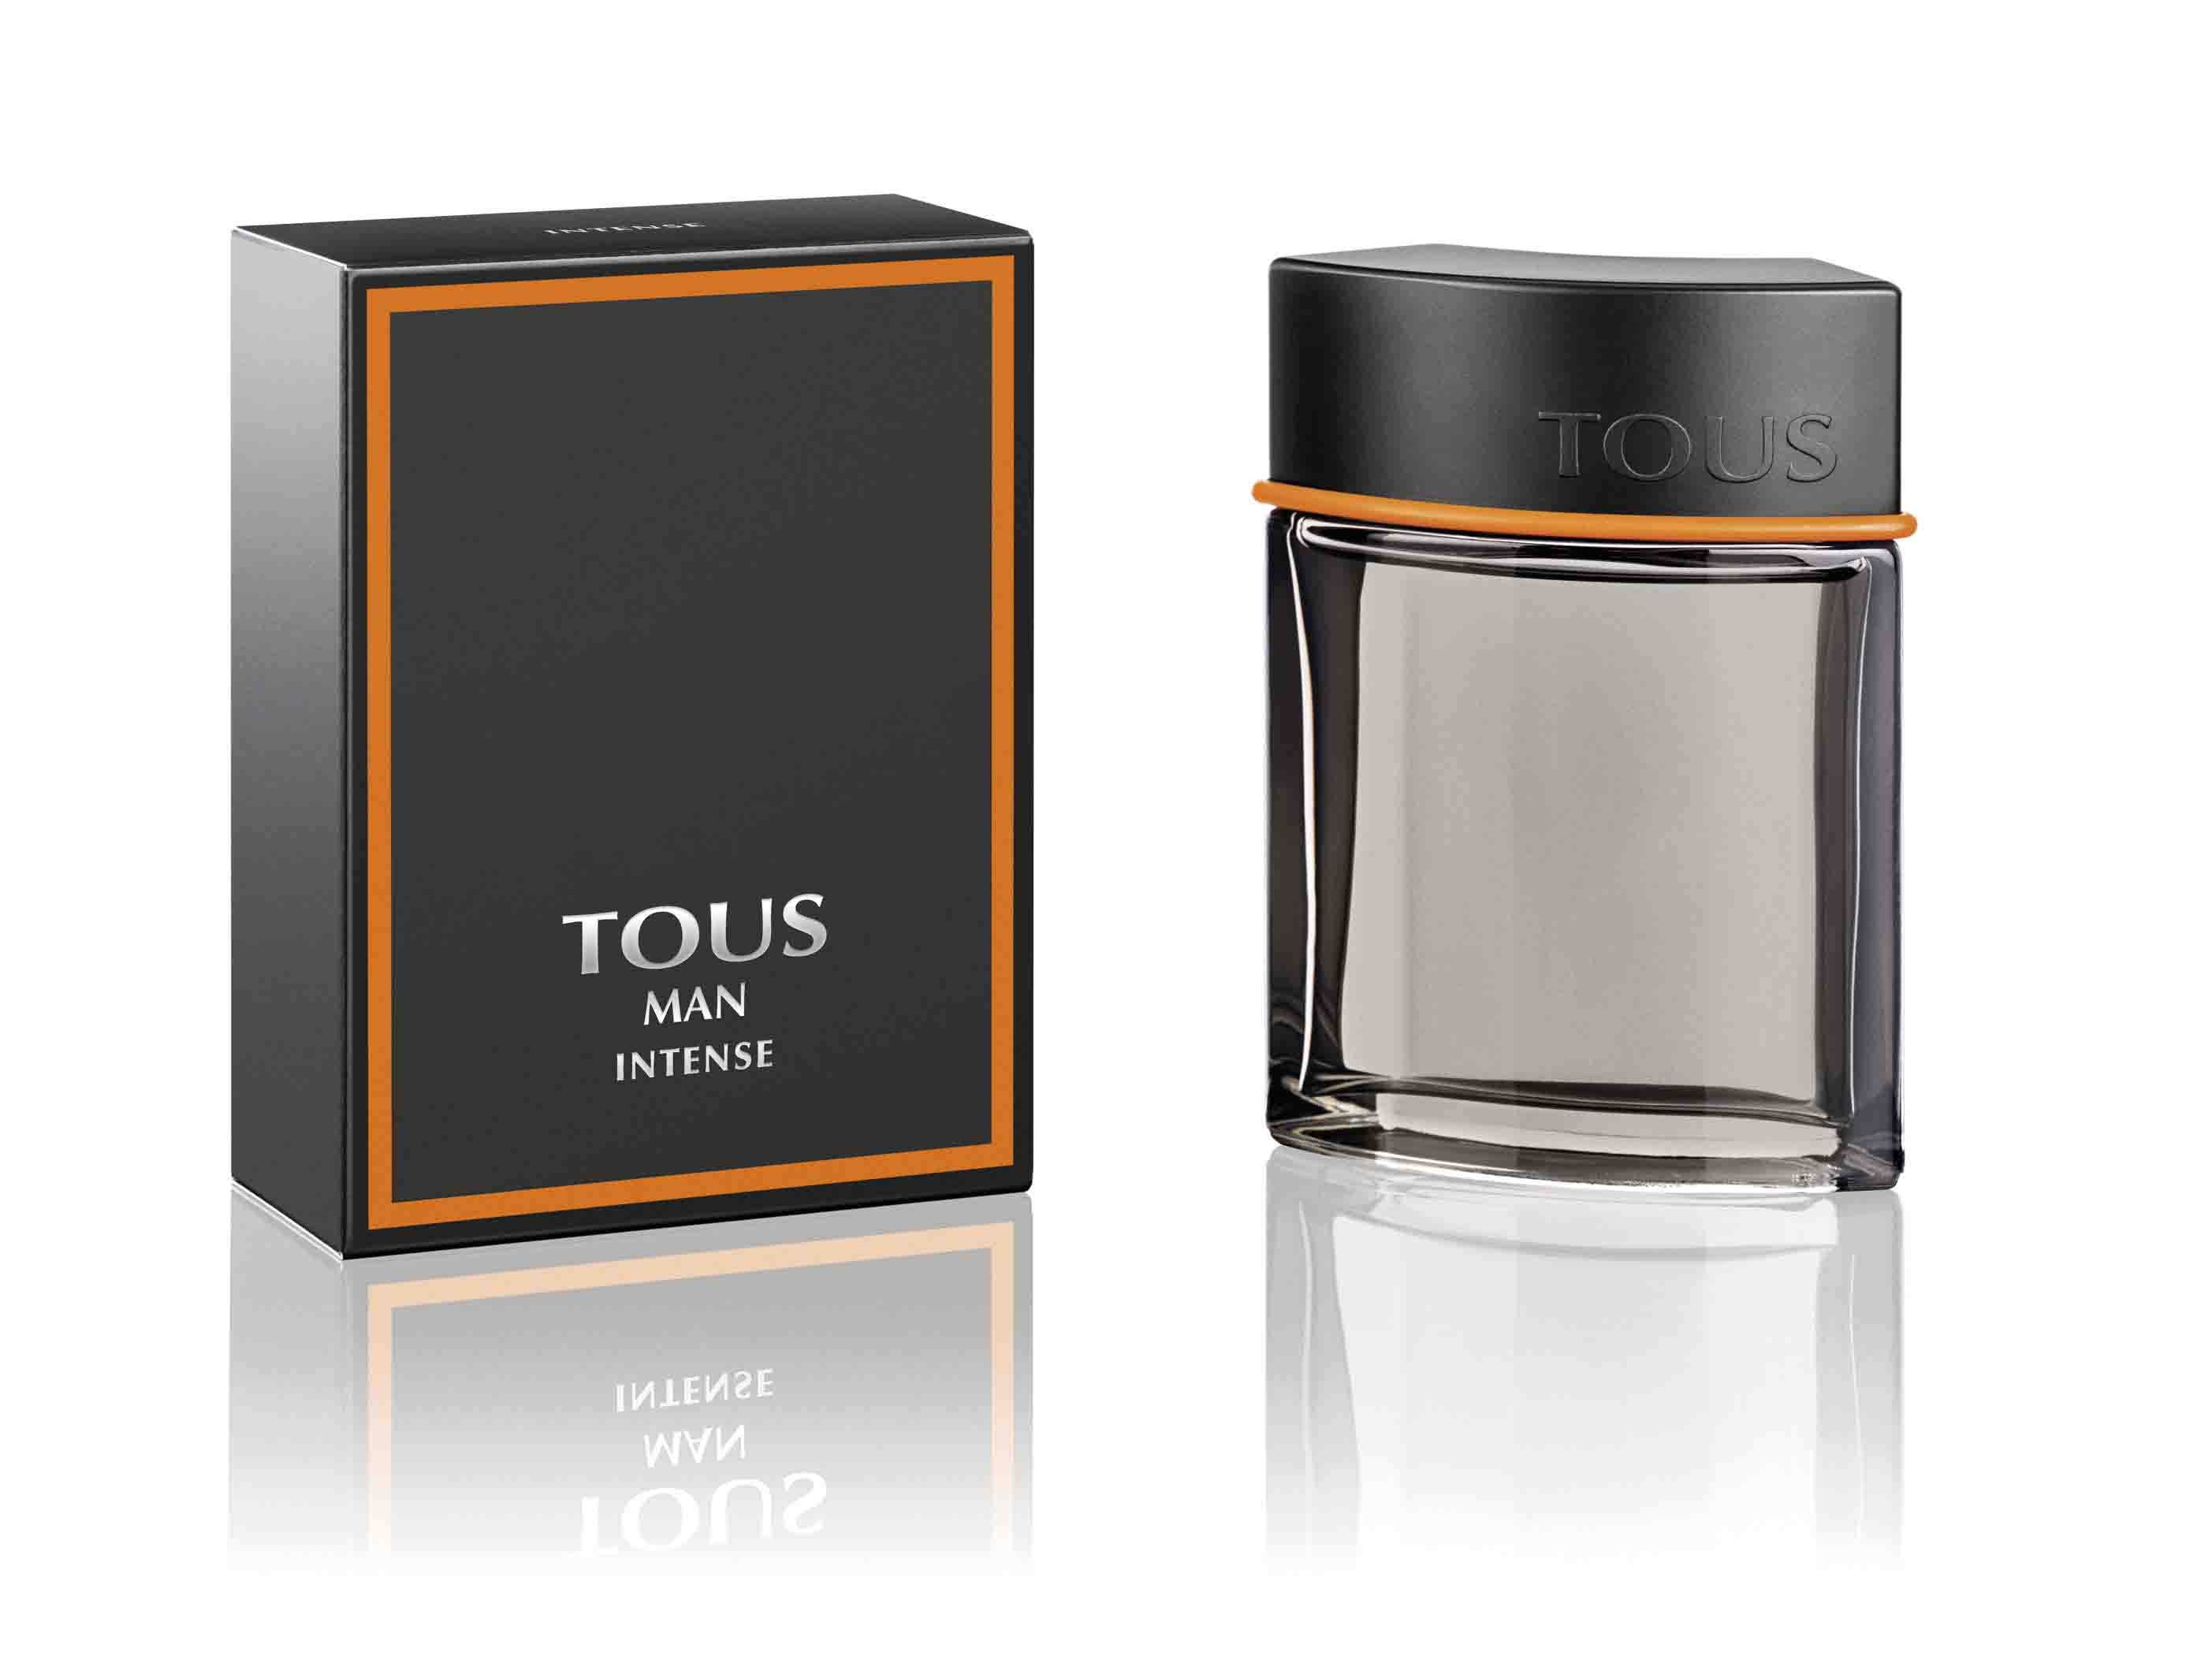 TOUS MAN INTENSE EDT 100 ML VP.